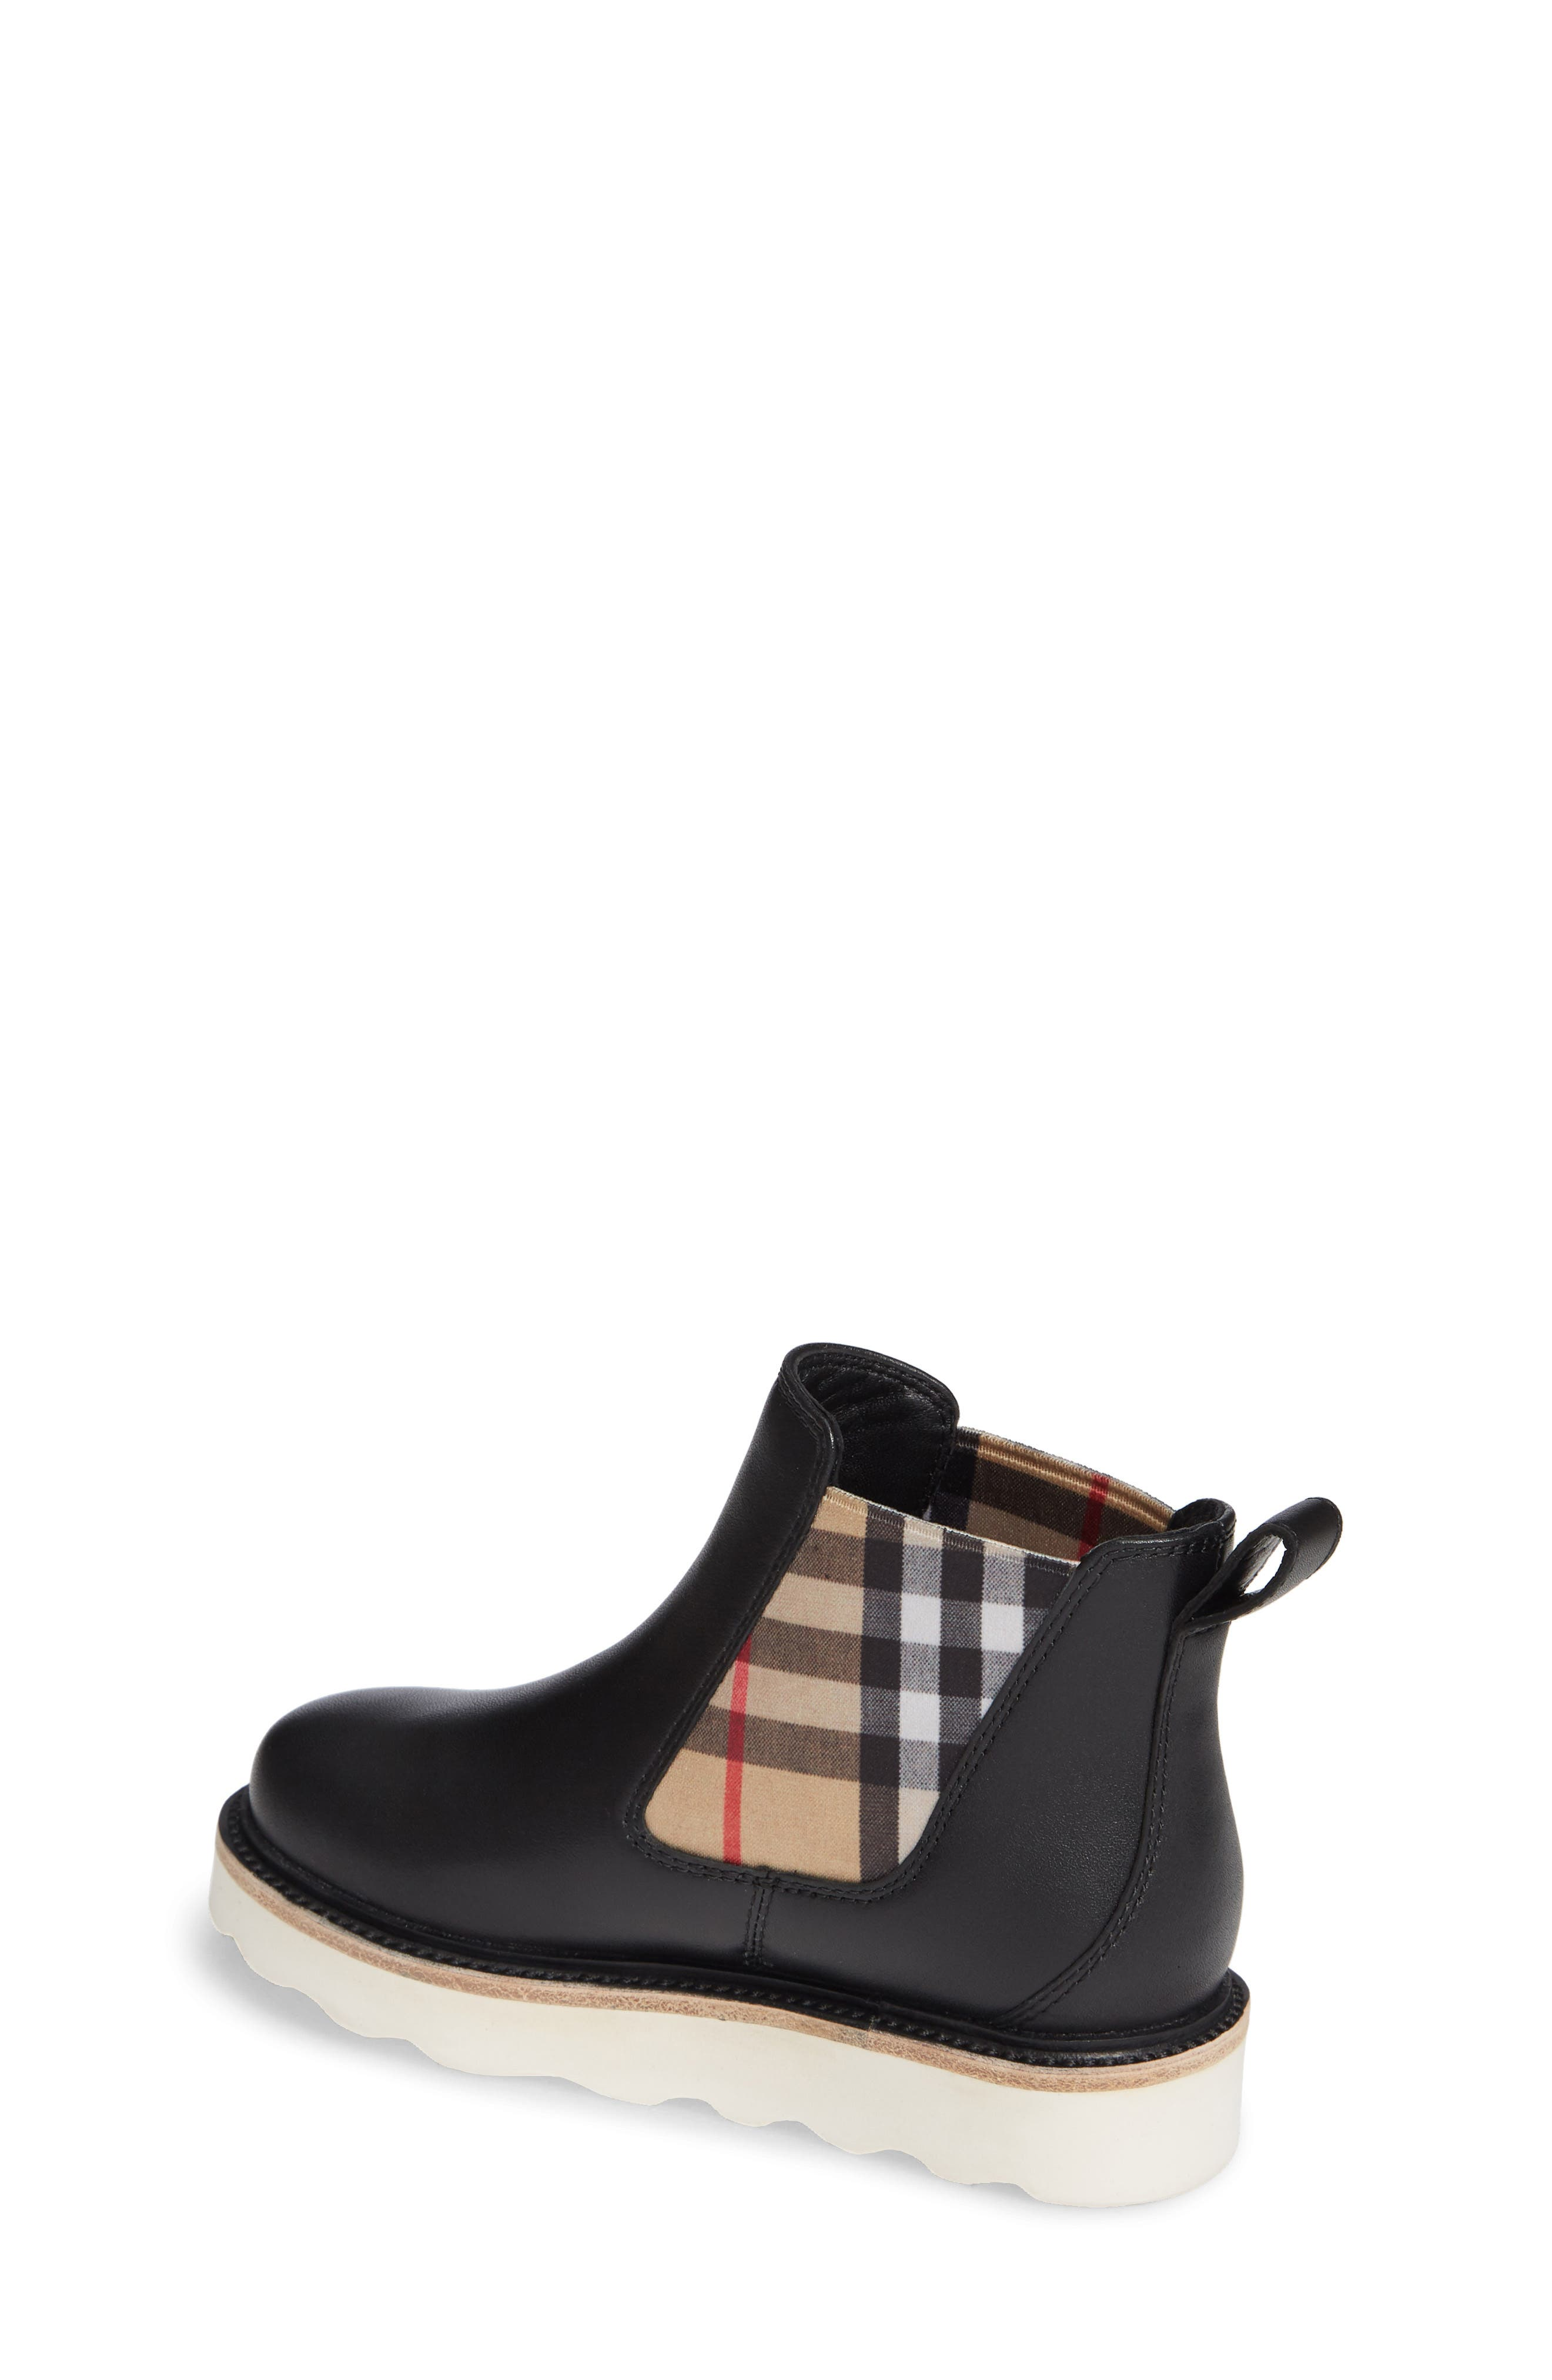 BURBERRY, Hayden Check Chelsea Bootie, Alternate thumbnail 2, color, BLACK